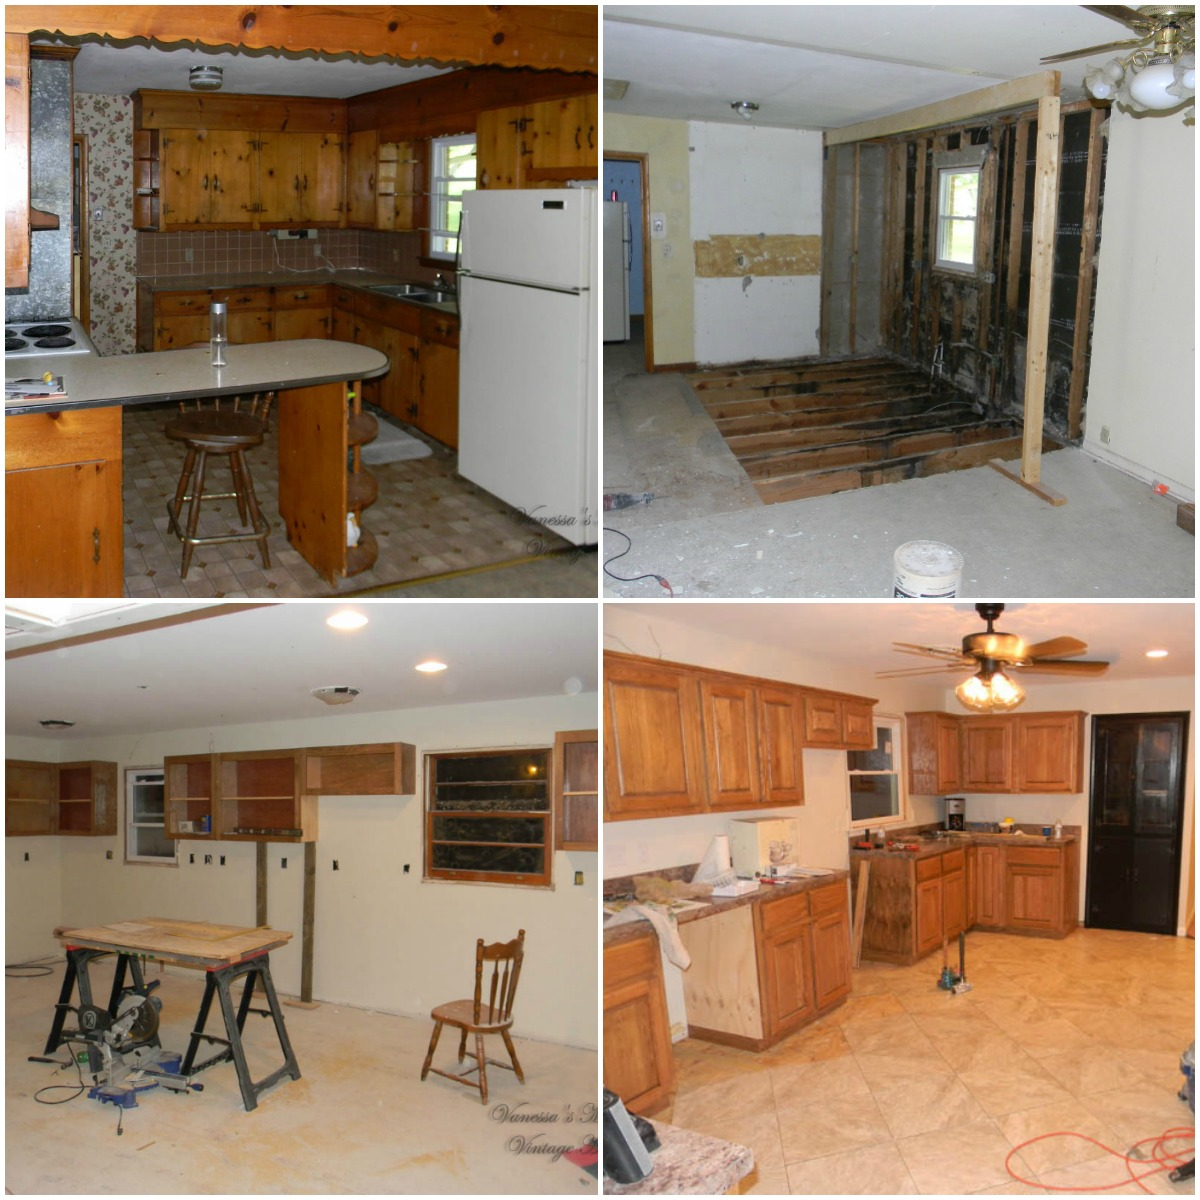 Kitchen Renovation Youtube: How To Paint Your Kitchen Cabinets In ONE